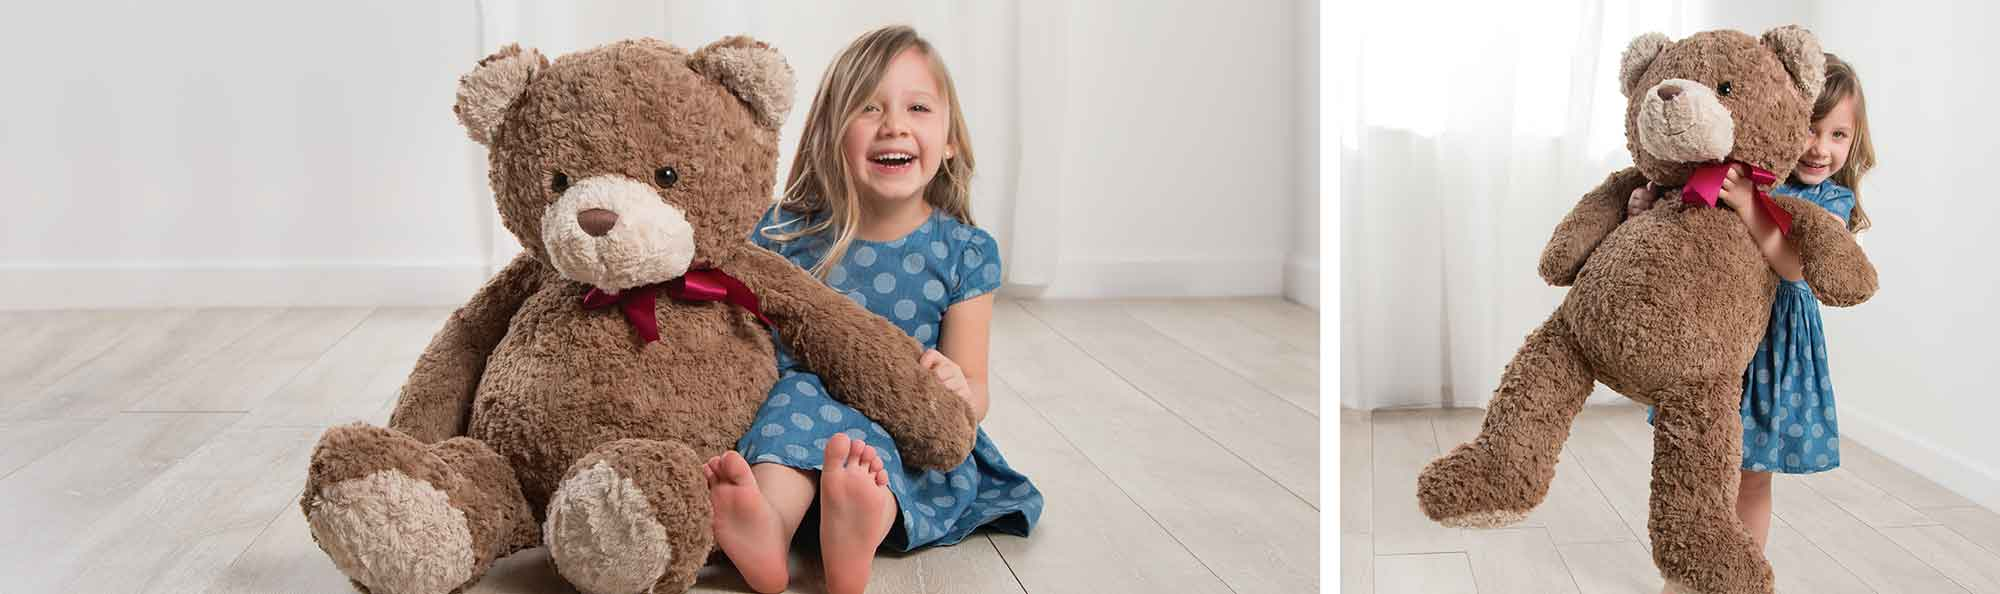 a little girl setting next to her new bear and another photo of her showing off that bear by holding it up